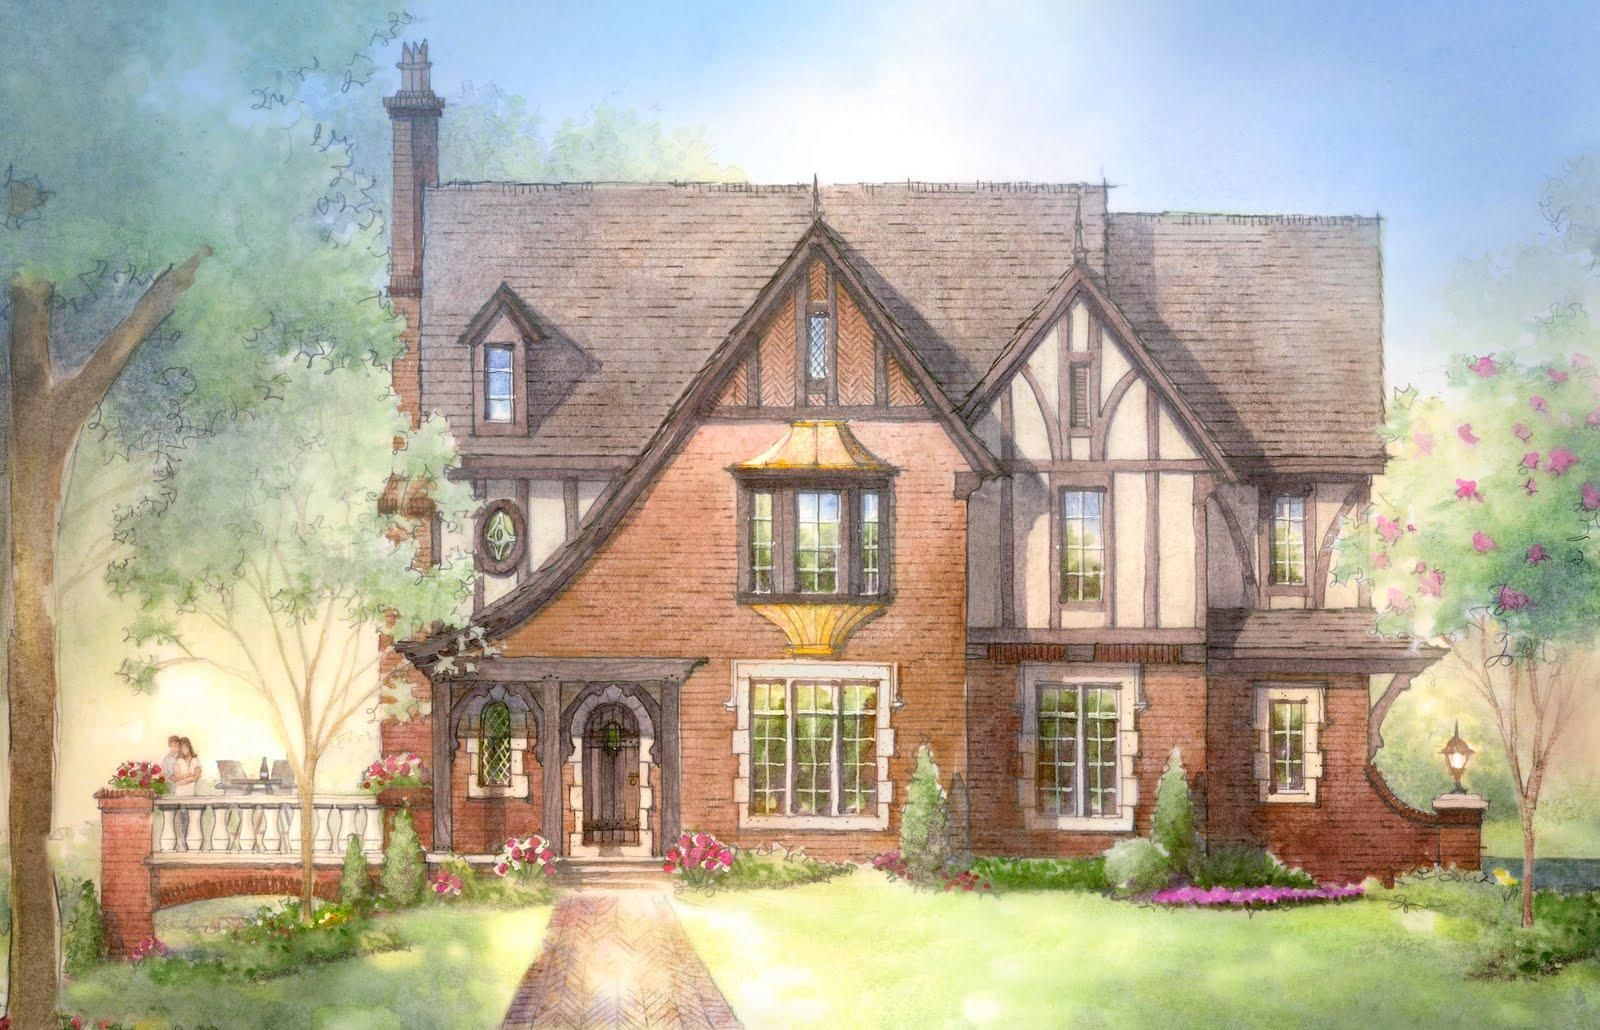 Architecture For Home Design English Country House Plans Tudor Style Homes Cottage House Plans